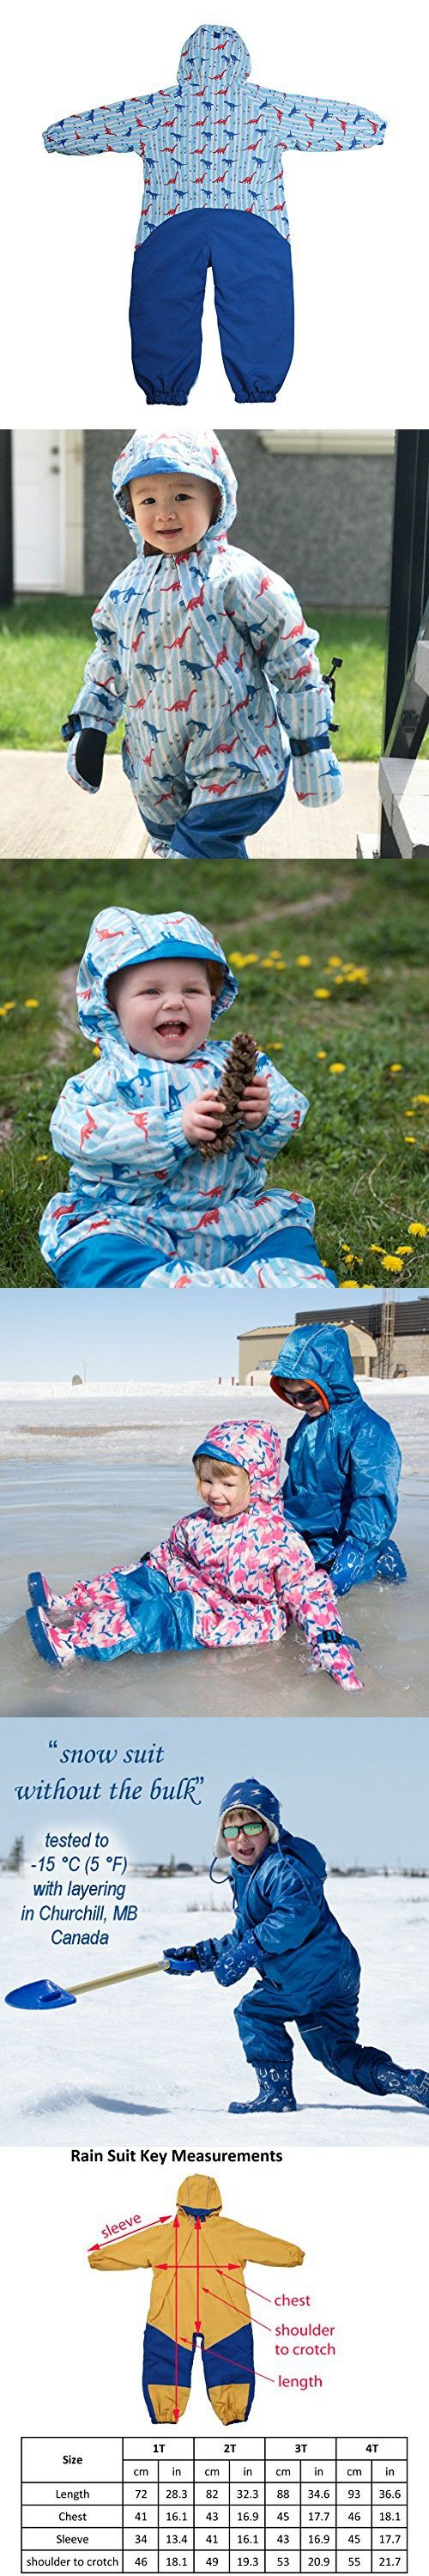 Jan & Jul Kids Water-proof Fleece-lined Rain Suit One-Piece Hooded (Dino,1T)